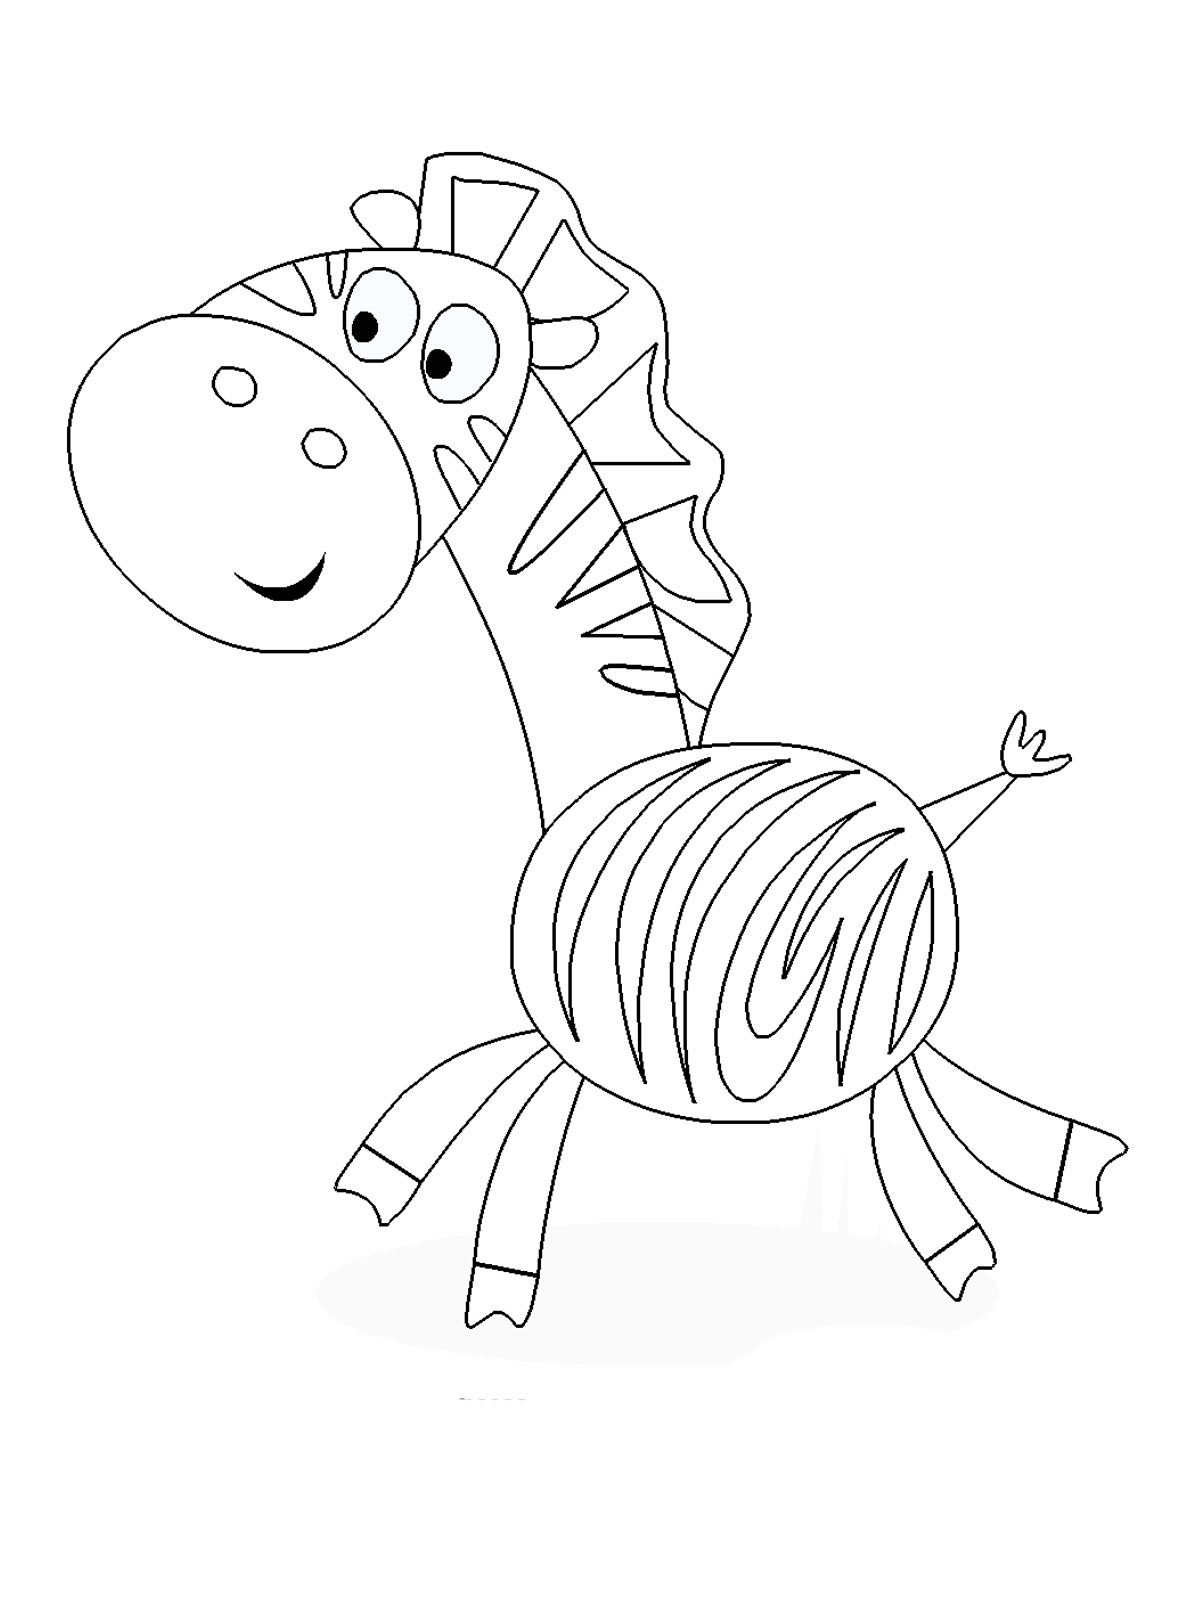 Zebra printable kids coloring pages